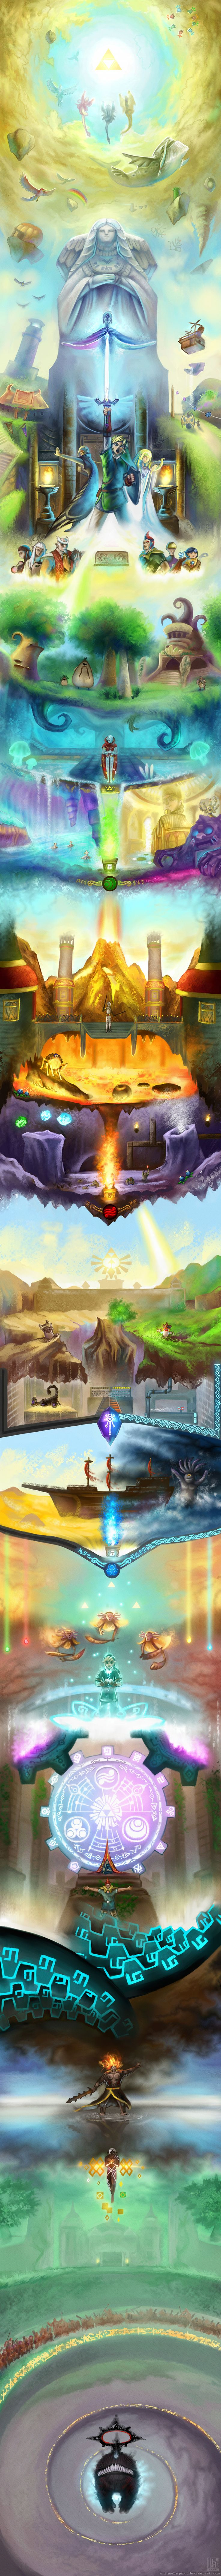 The Legend of Zelda - Skyward Sword by uniqueLegend.deviantart.com    ( I DUNNO WHAT MY FEELINGS ARE DOING!)